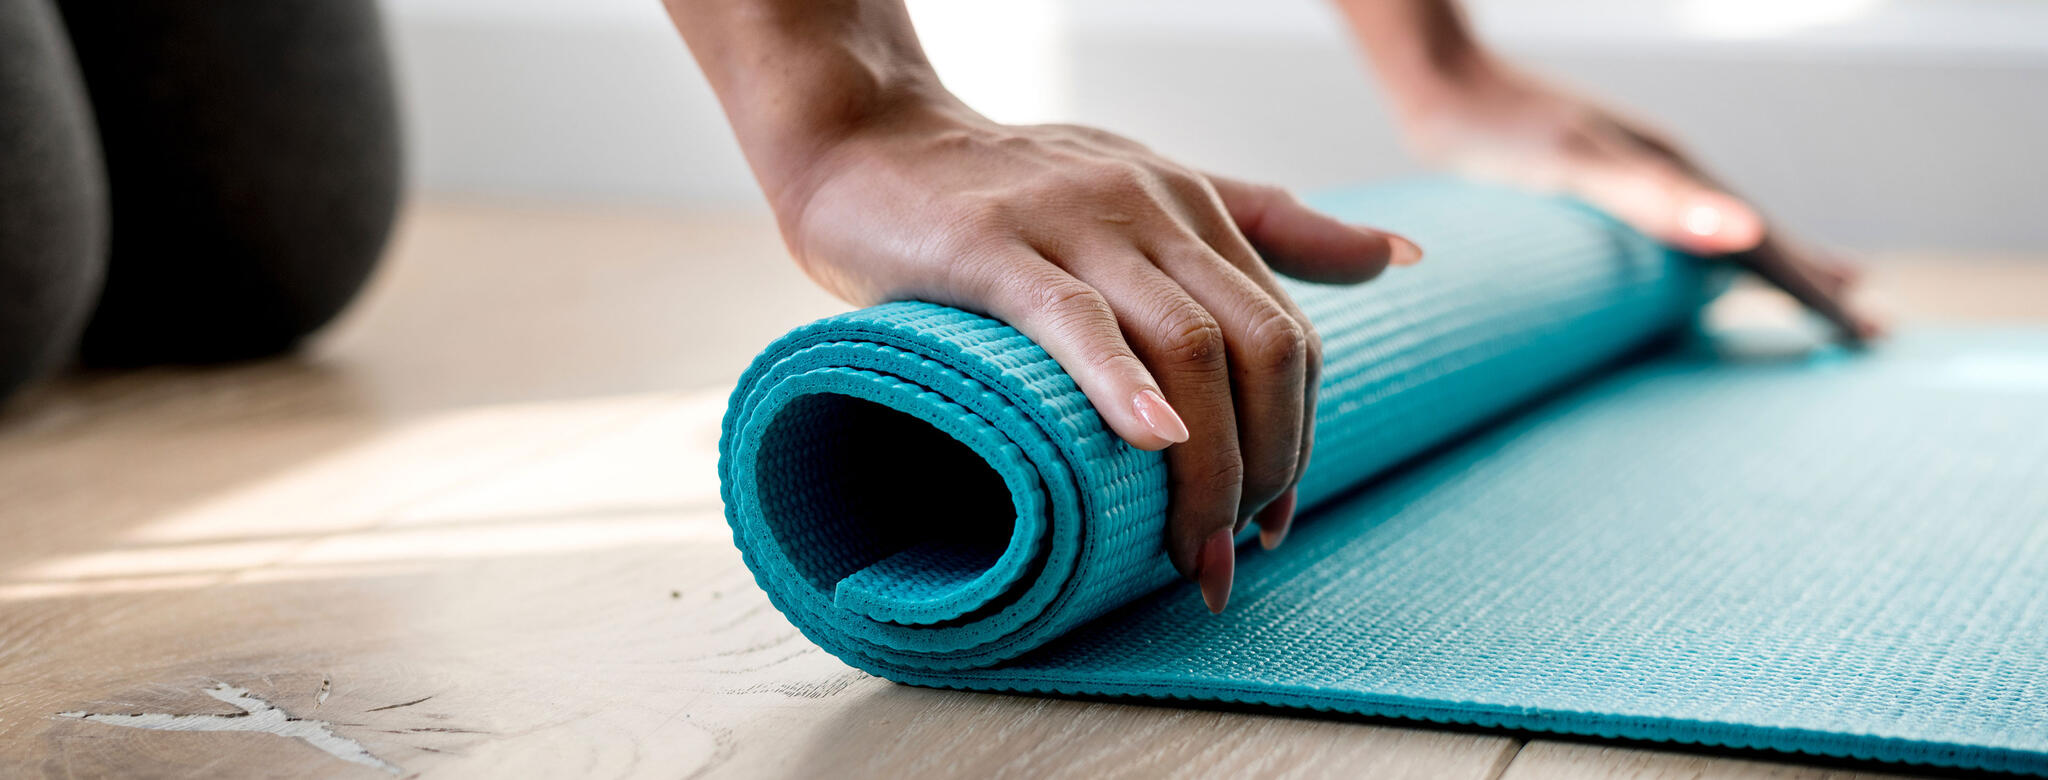 Woman rolling out a yoga mat